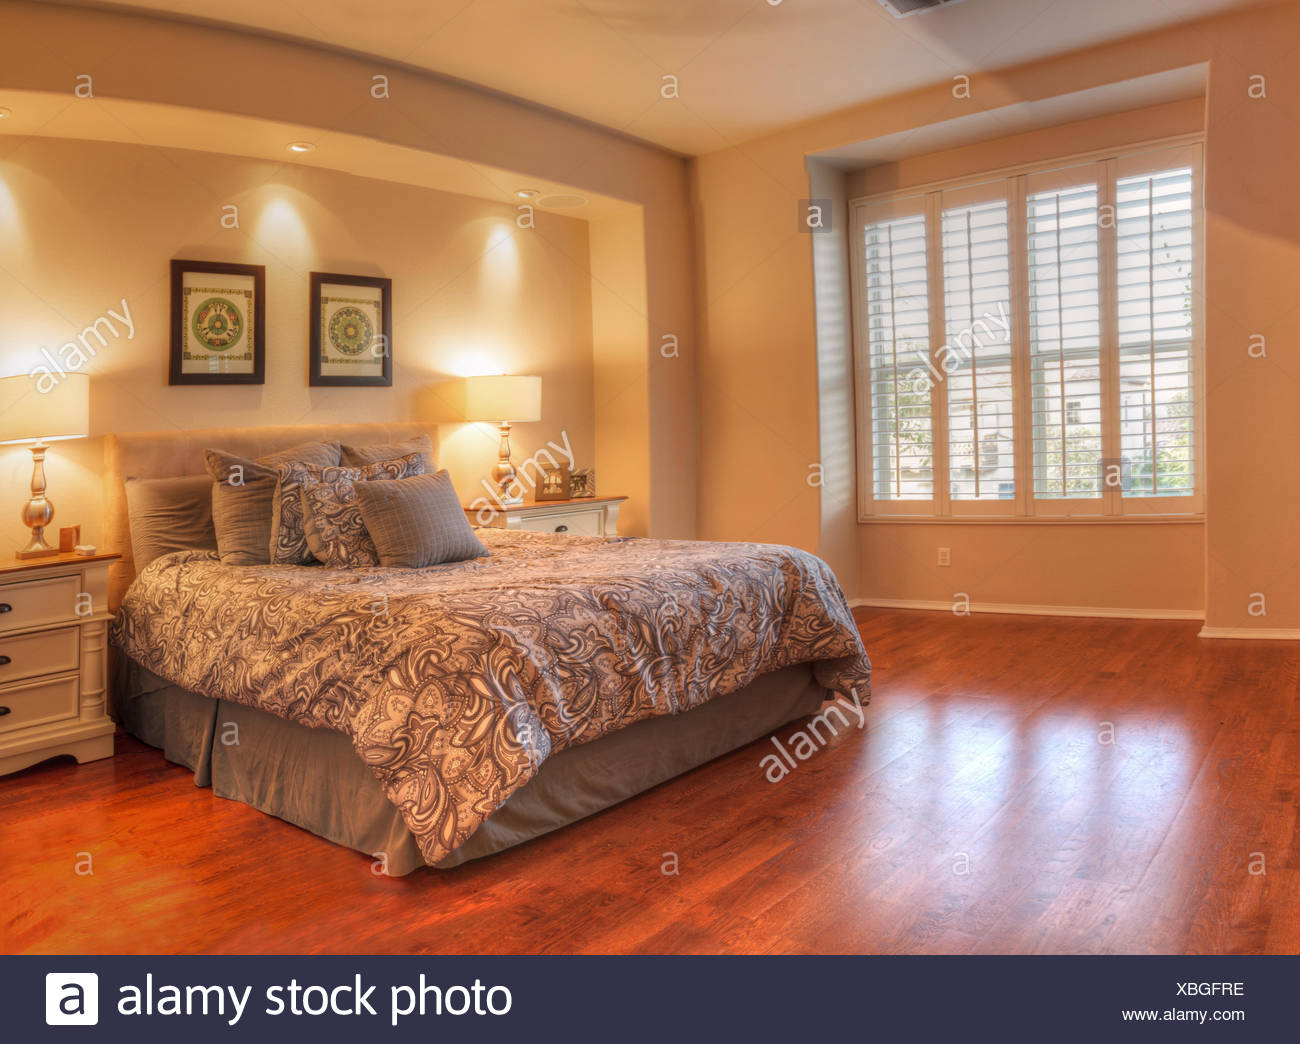 Master Bedroom With A Bay Window Stock Photo Alamy